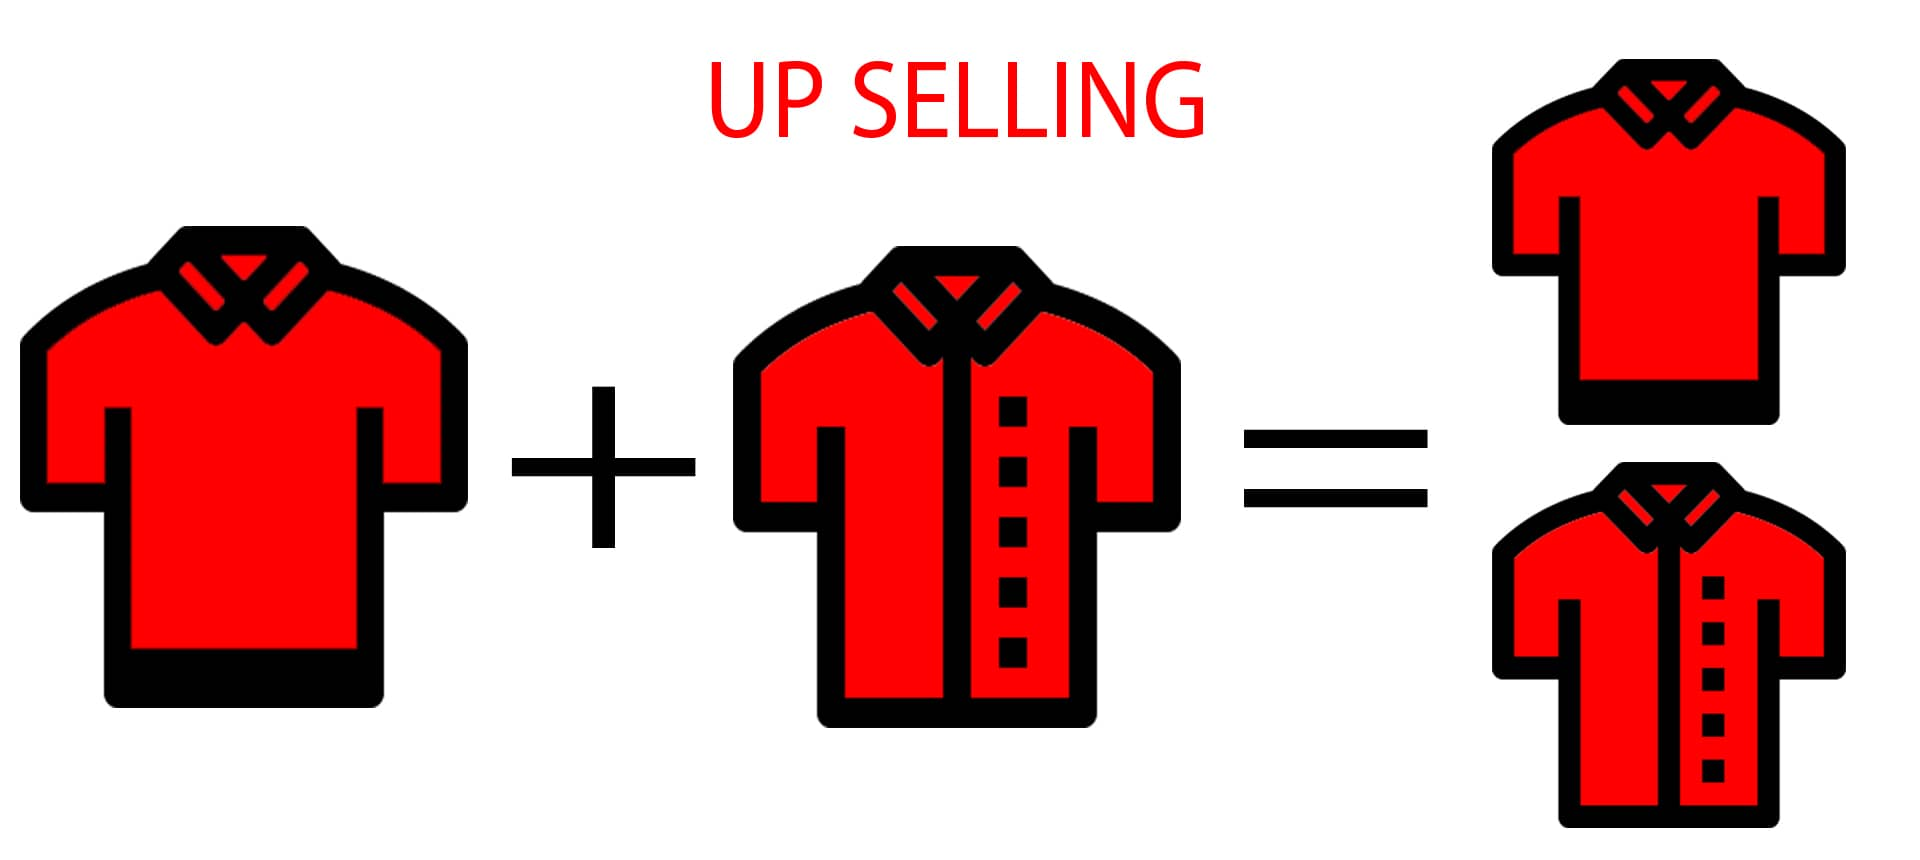 UP SELLING